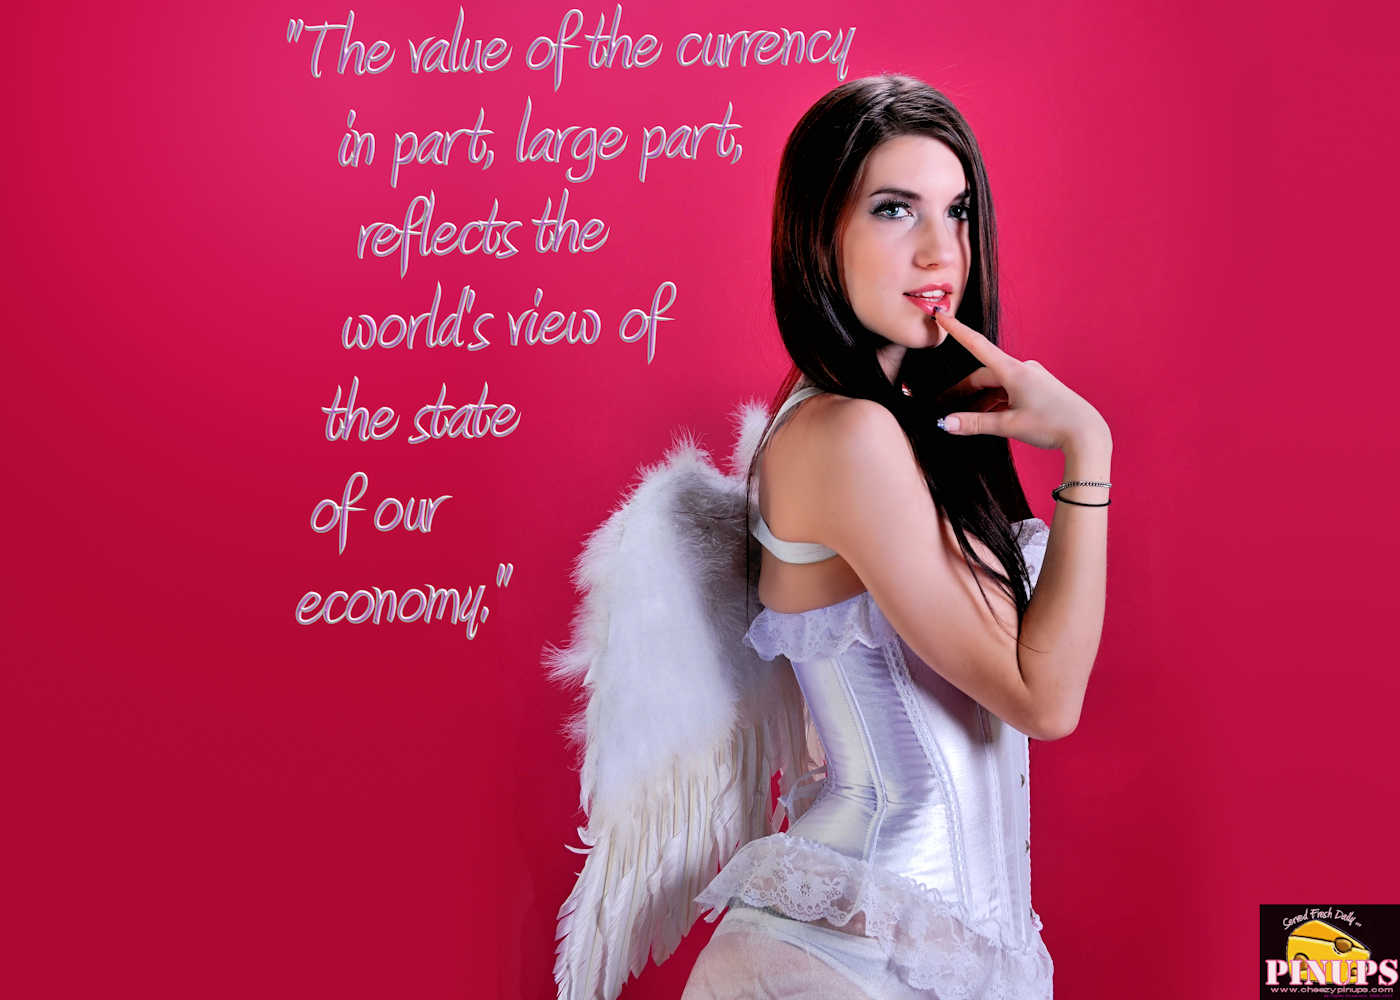 "Cheezy Pinup - December 30, 2017   ""The value of the currency in part, large part, reflects the world's view of the state of our economy."" - Jim Flaherty Model: SabrynaJade"